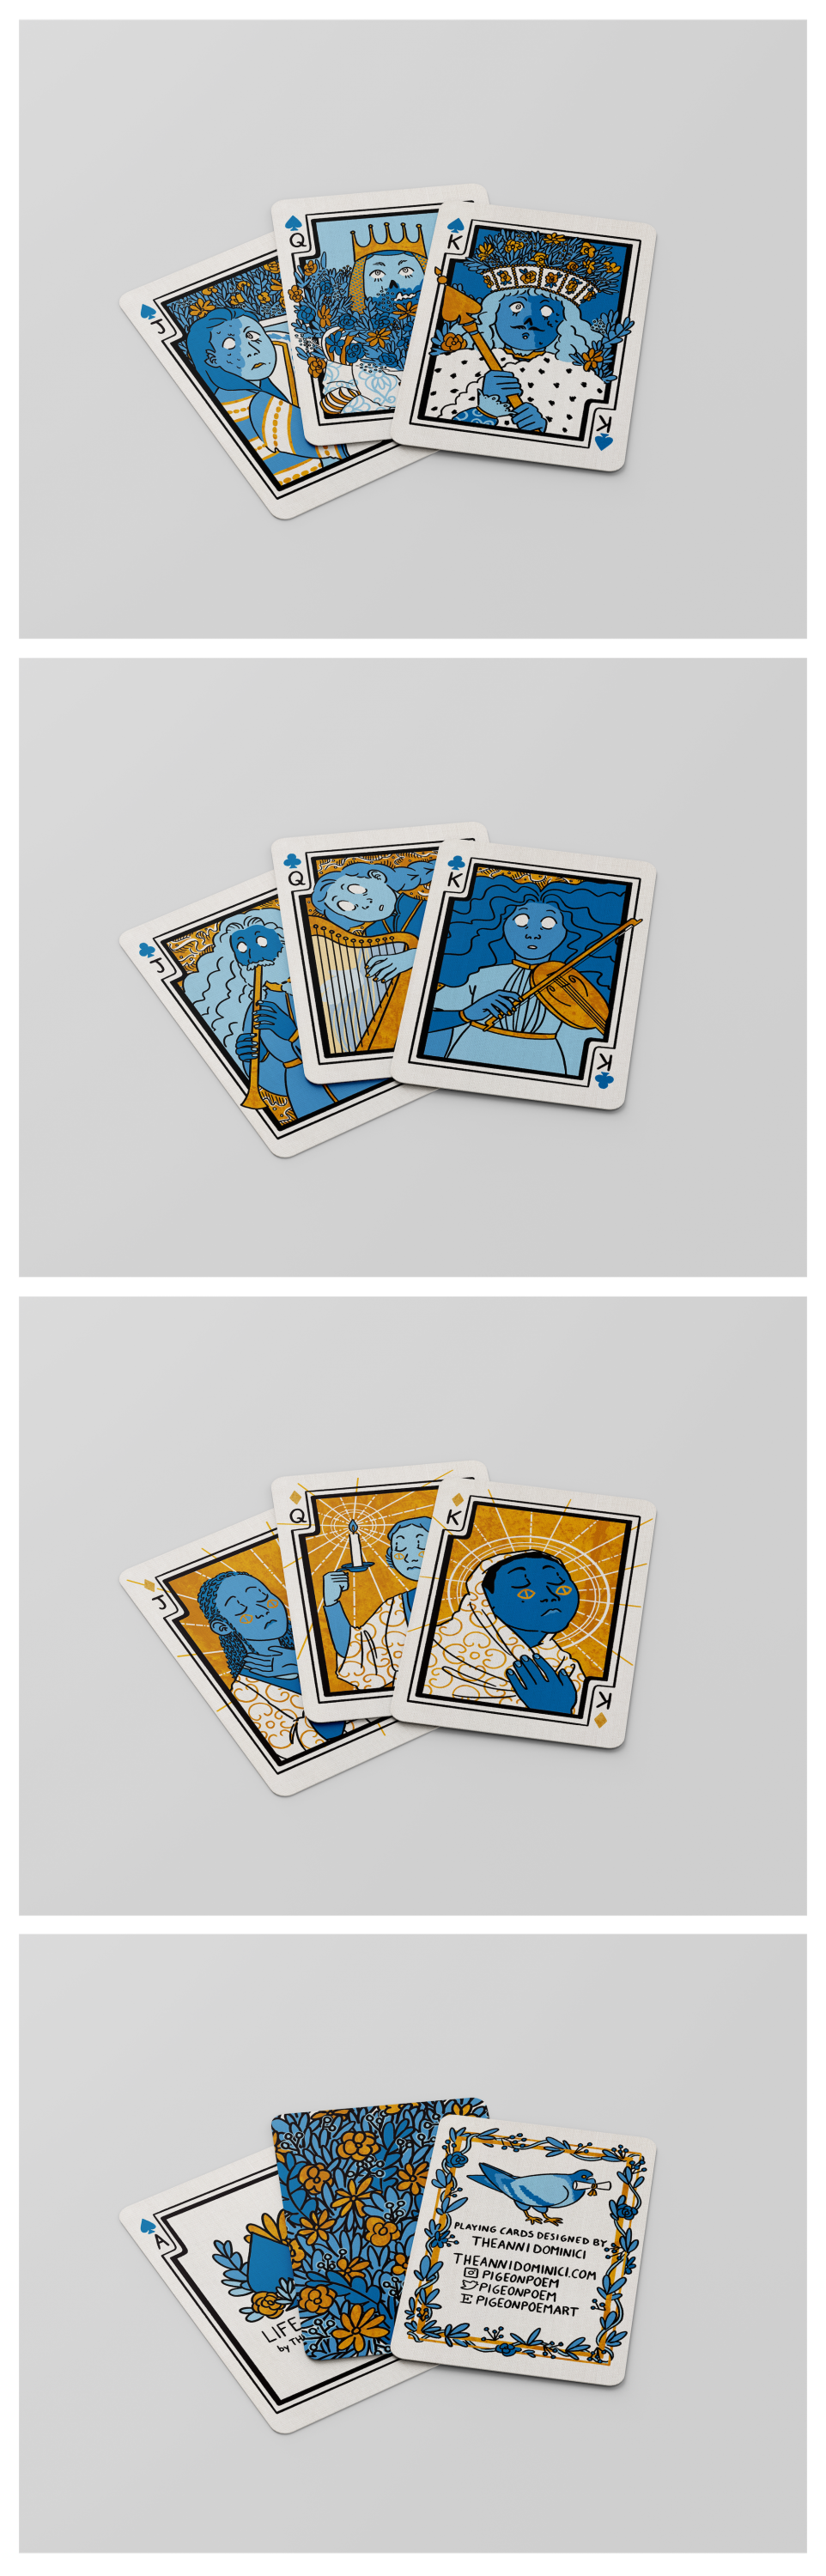 """Mock-ups of an illustrated deck of cards called """"Life and After"""". The mock-ups all have the same format: three cards fanned out on a plain white surface.  The first picture is of the spade suit, which is zombie royalty themed. The king's mouth is open in"""